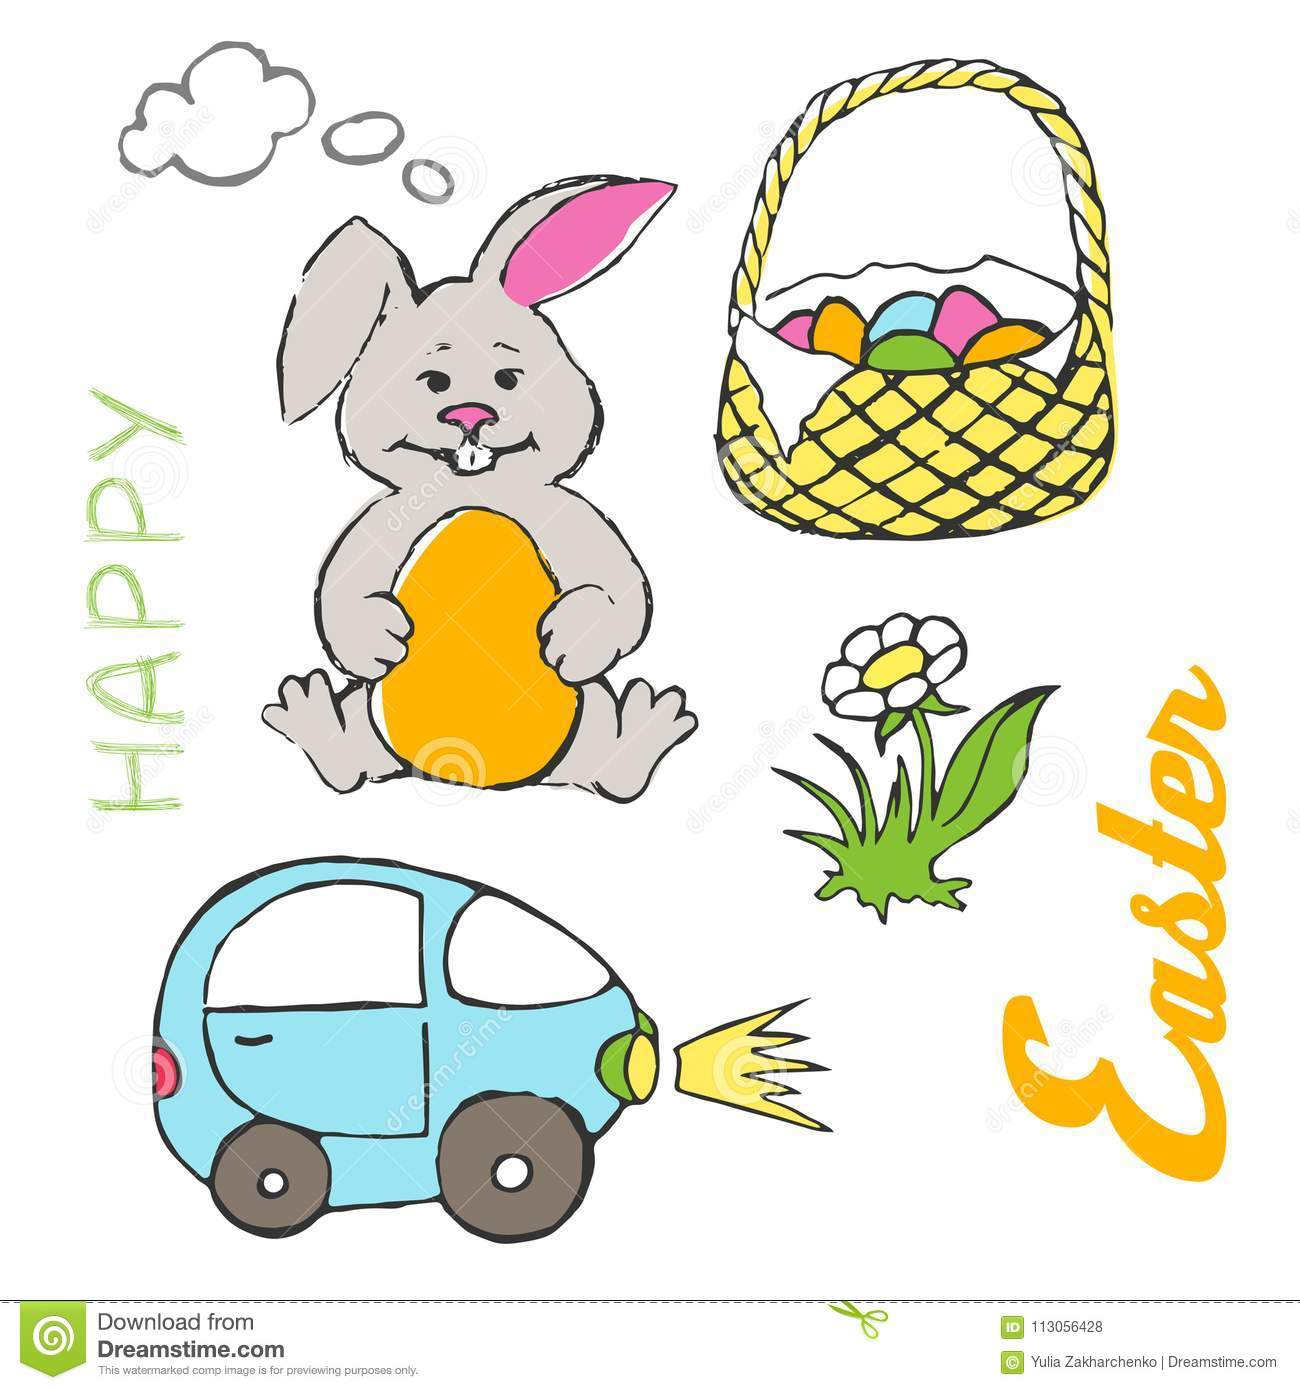 Easter Bunny Reese S Egg Cars: Happy Easter Illustration Stock Vector. Illustration Of